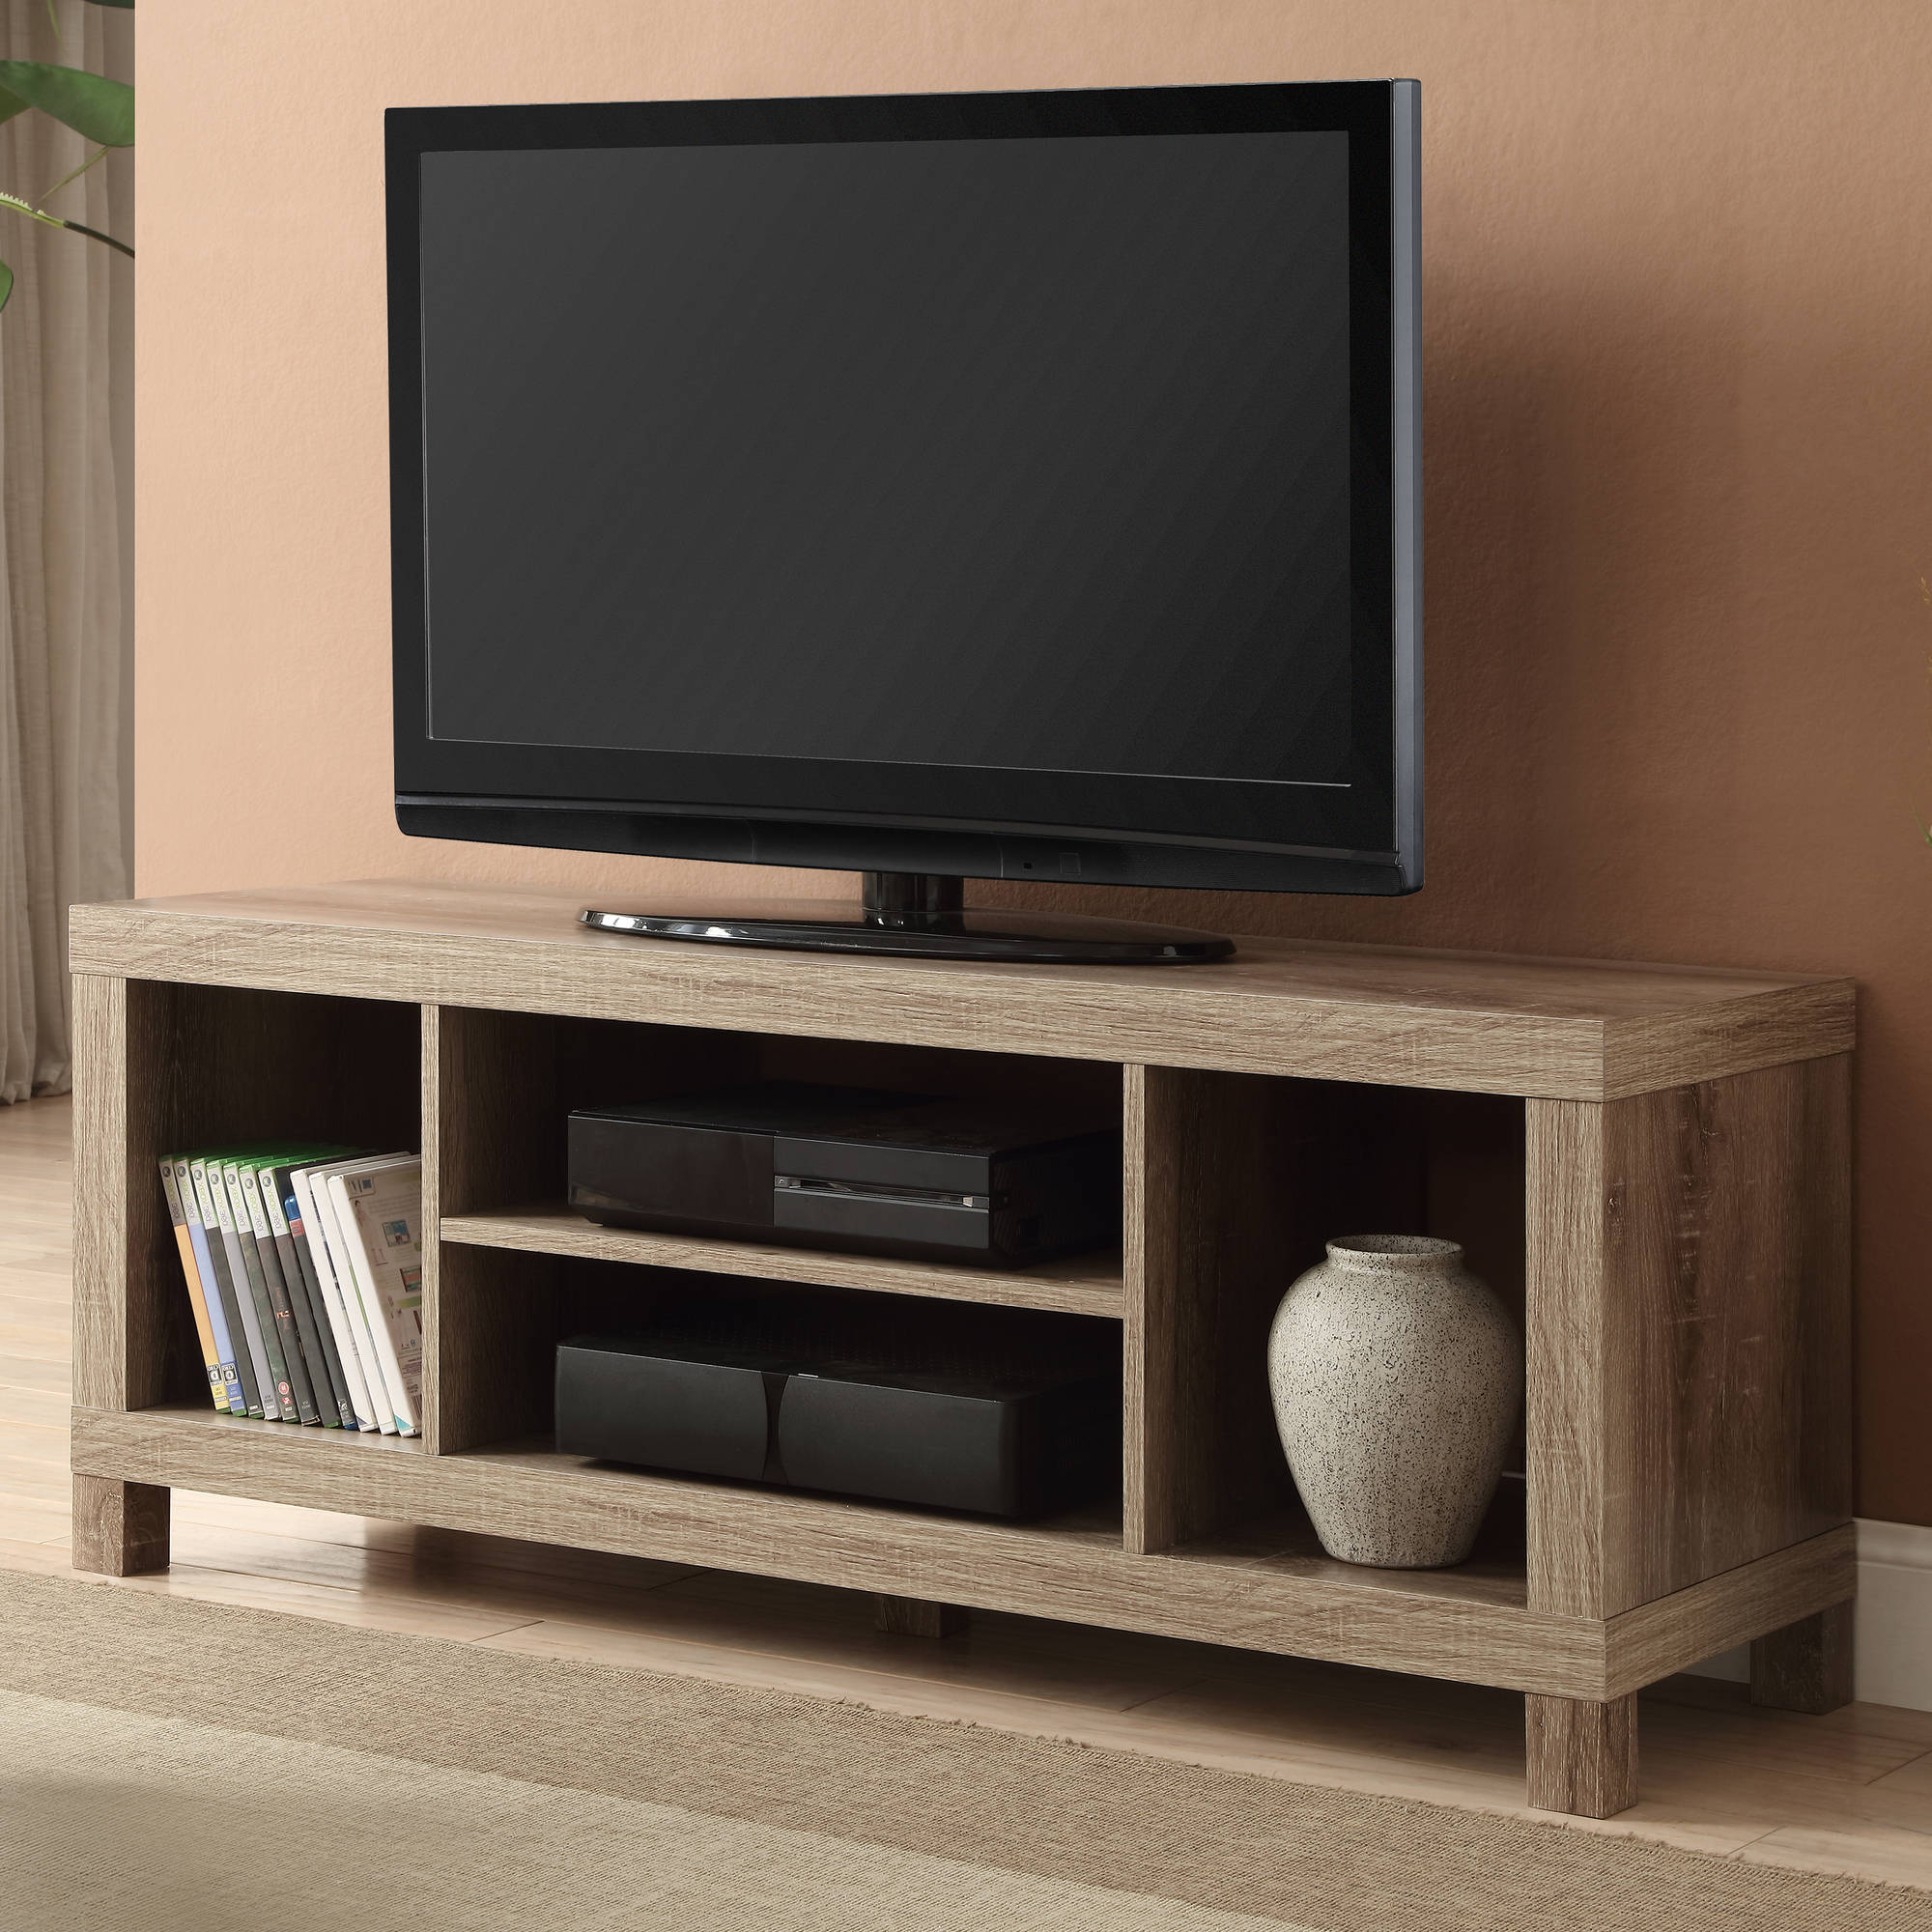 """Tv Stands With Storage Baskets With Recent Mainstays Tv Stand For Tvs Up To 42"""", Multiple Colors – Walmart (View 19 of 20)"""